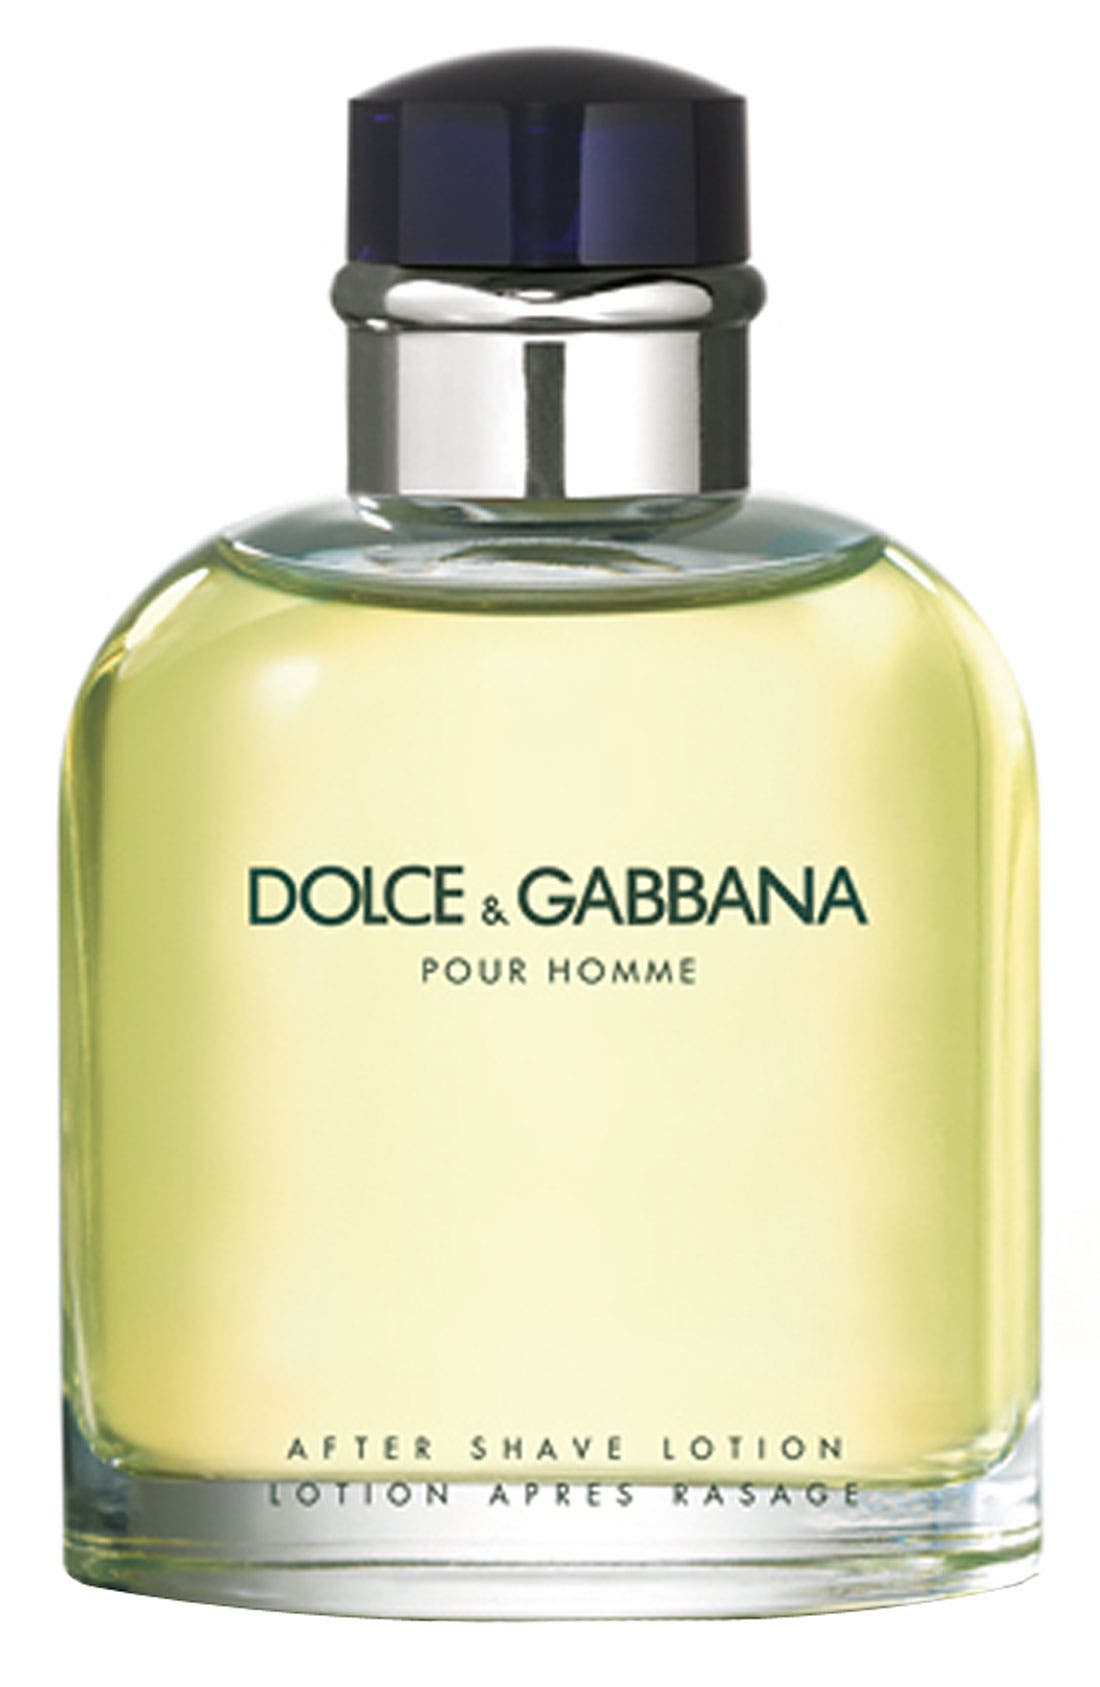 Dolce&Gabbana Beauty 'Pour Homme' After Shave Lotion Splash